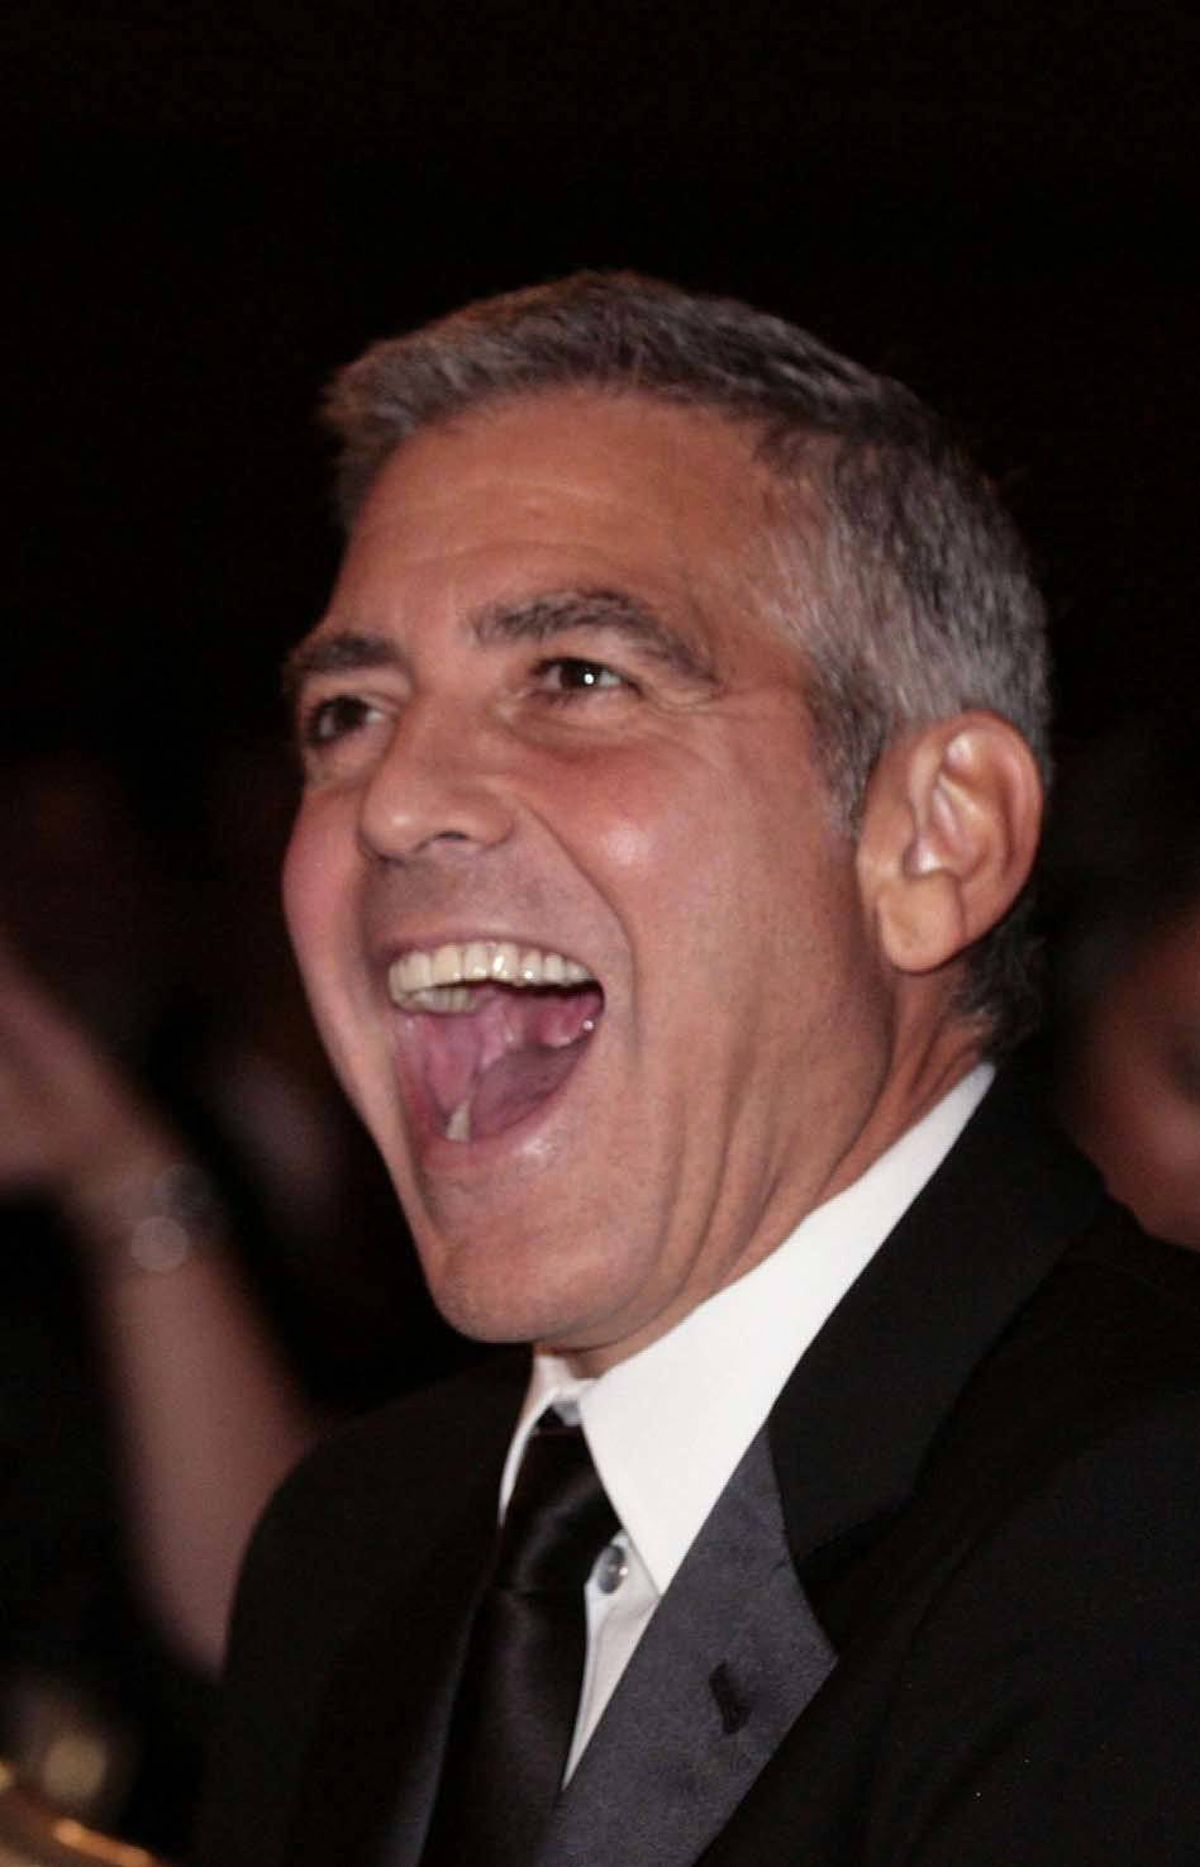 And George Clooney had a really, really good time.